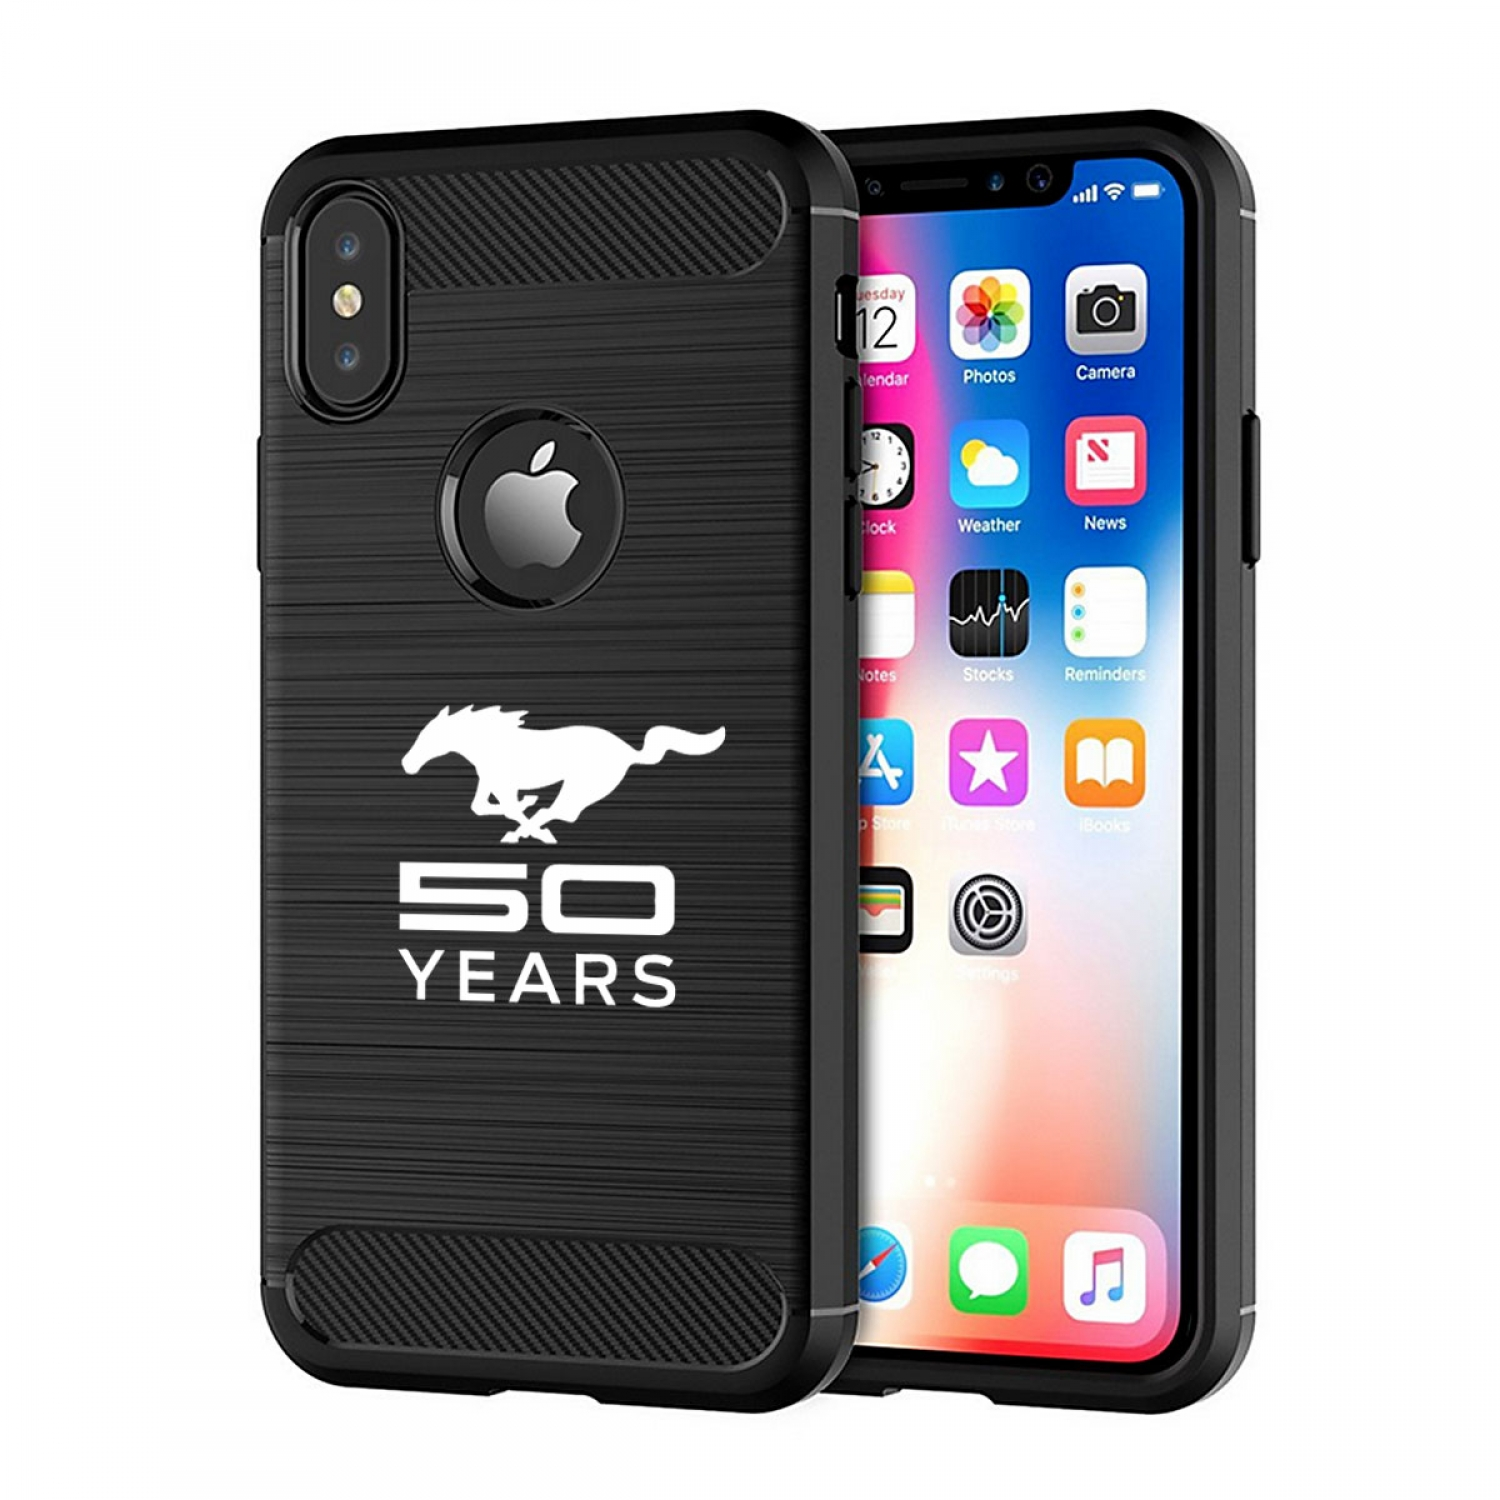 Ford Mustang 50 Years iPhone X TPU Shockproof Black Carbon Fiber Textures Stripes Cell Phone Case